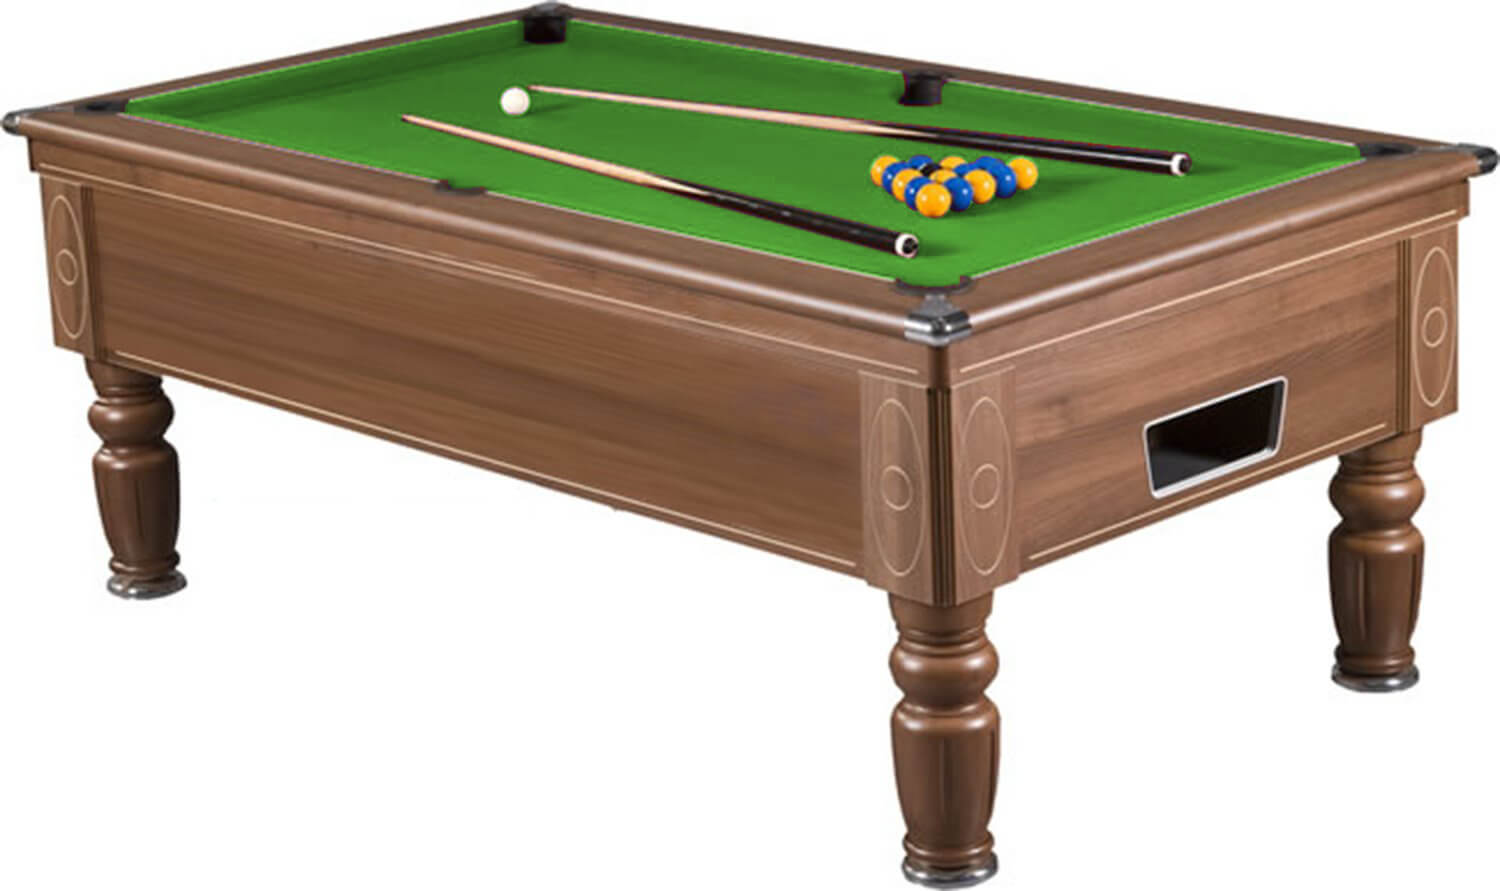 Supreme prince pool table 6 ft 7 ft 8 ft liberty games for Table 6 of gstr 1